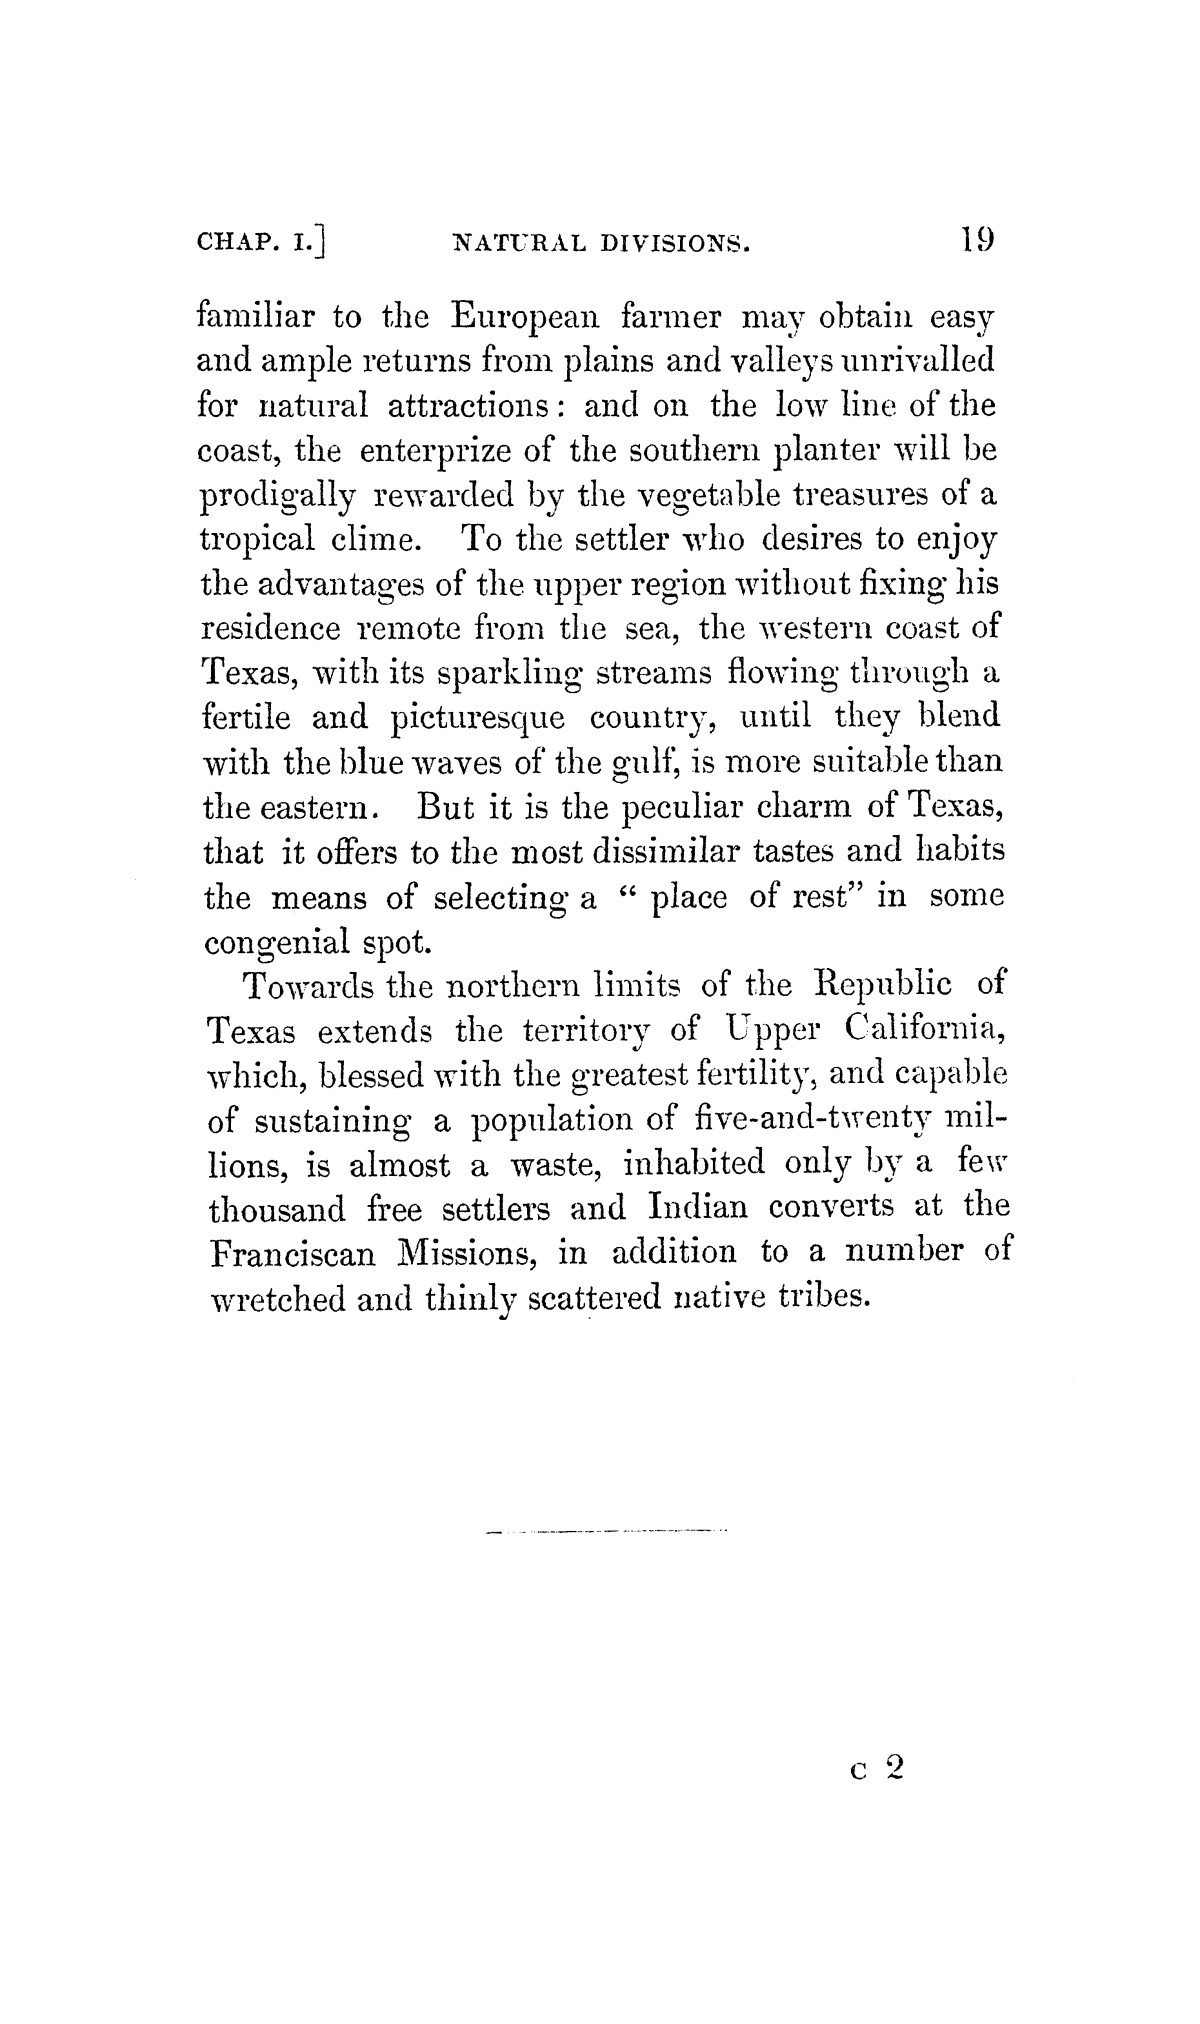 Texas: the rise, progress, and prospects of the Republic of Texas, Vol.1                                                                                                      [Sequence #]: 71 of 432